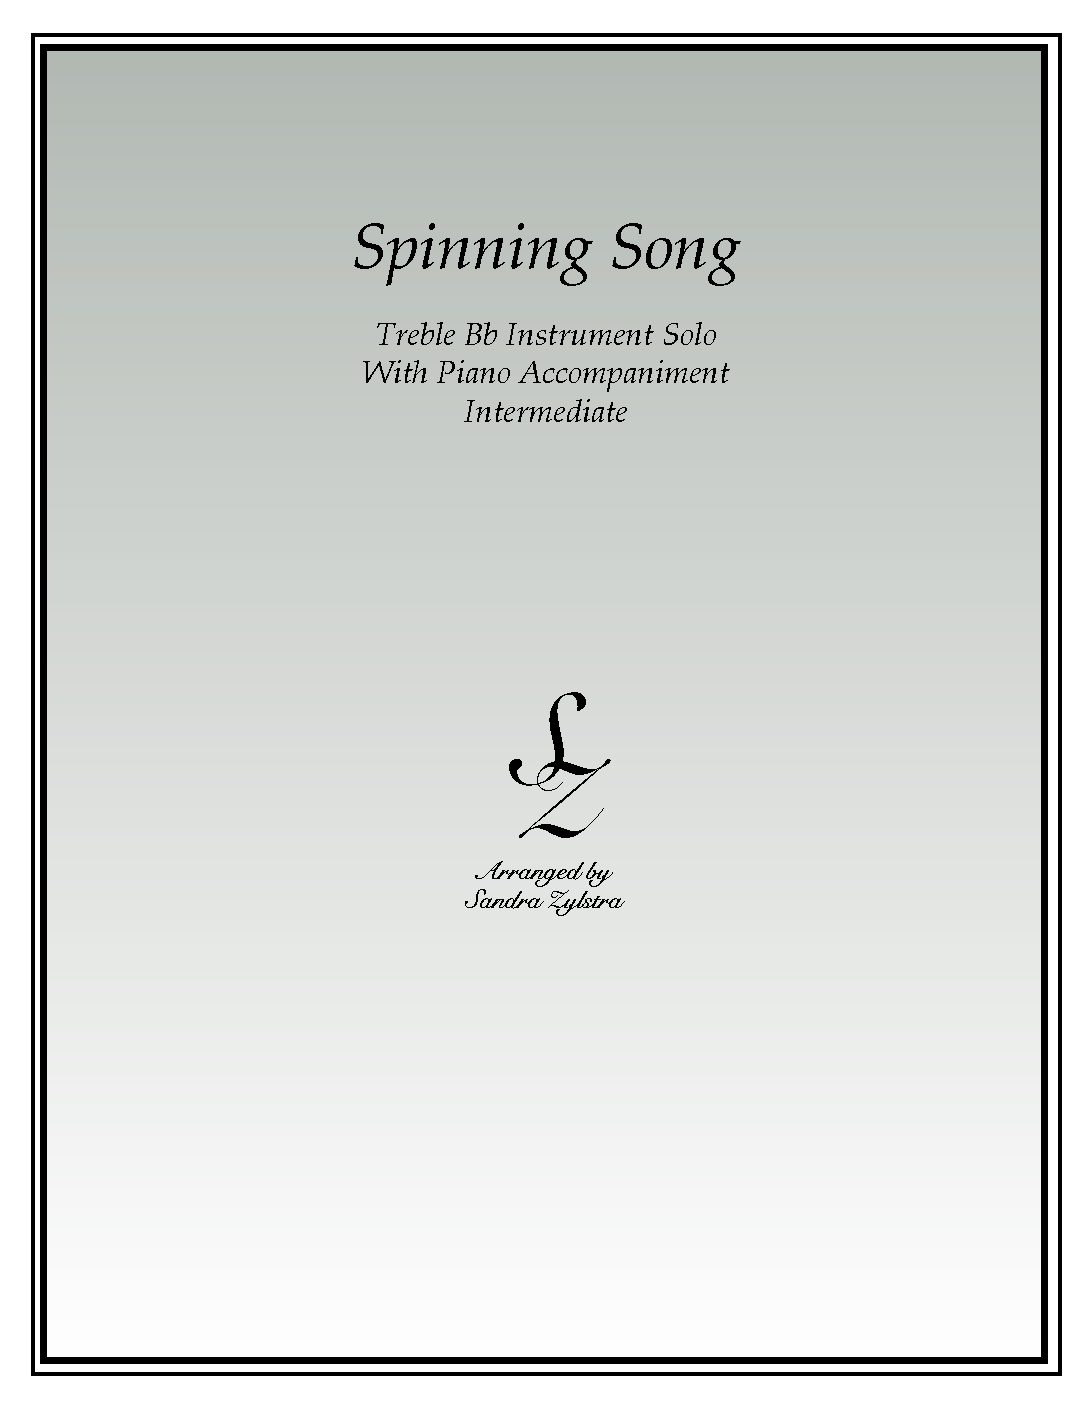 Spinning Song -Treble Bb Instrument Solo